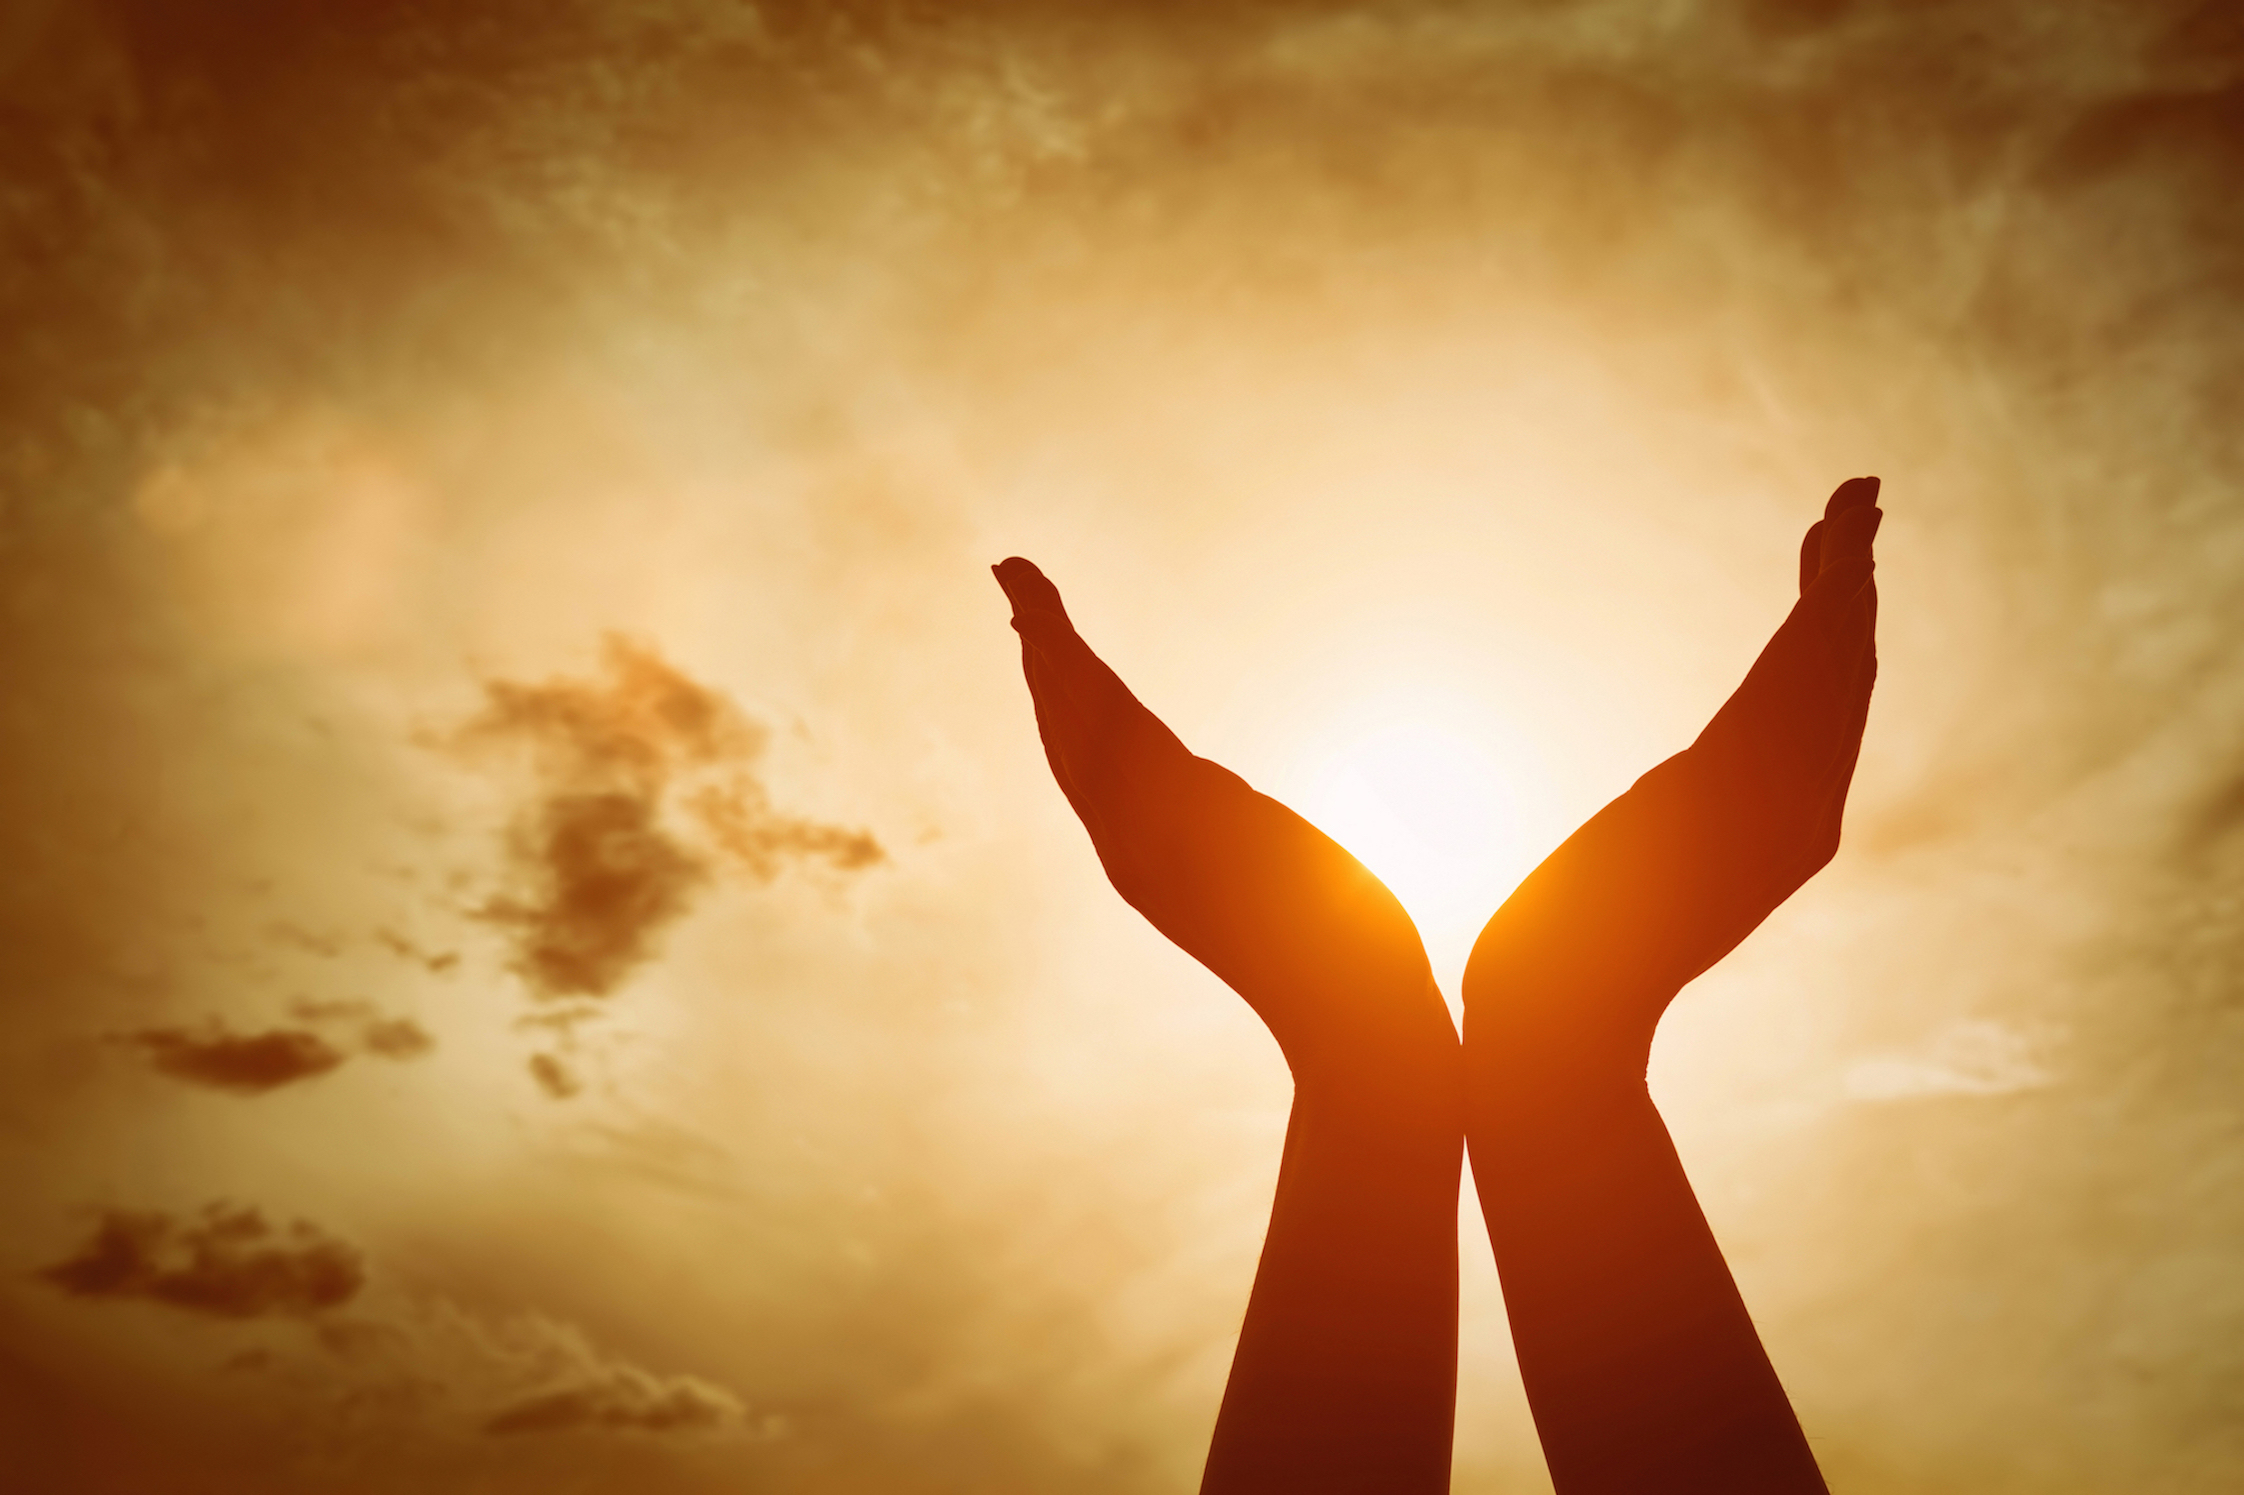 Raised hands catching sun shutterstock_432970087